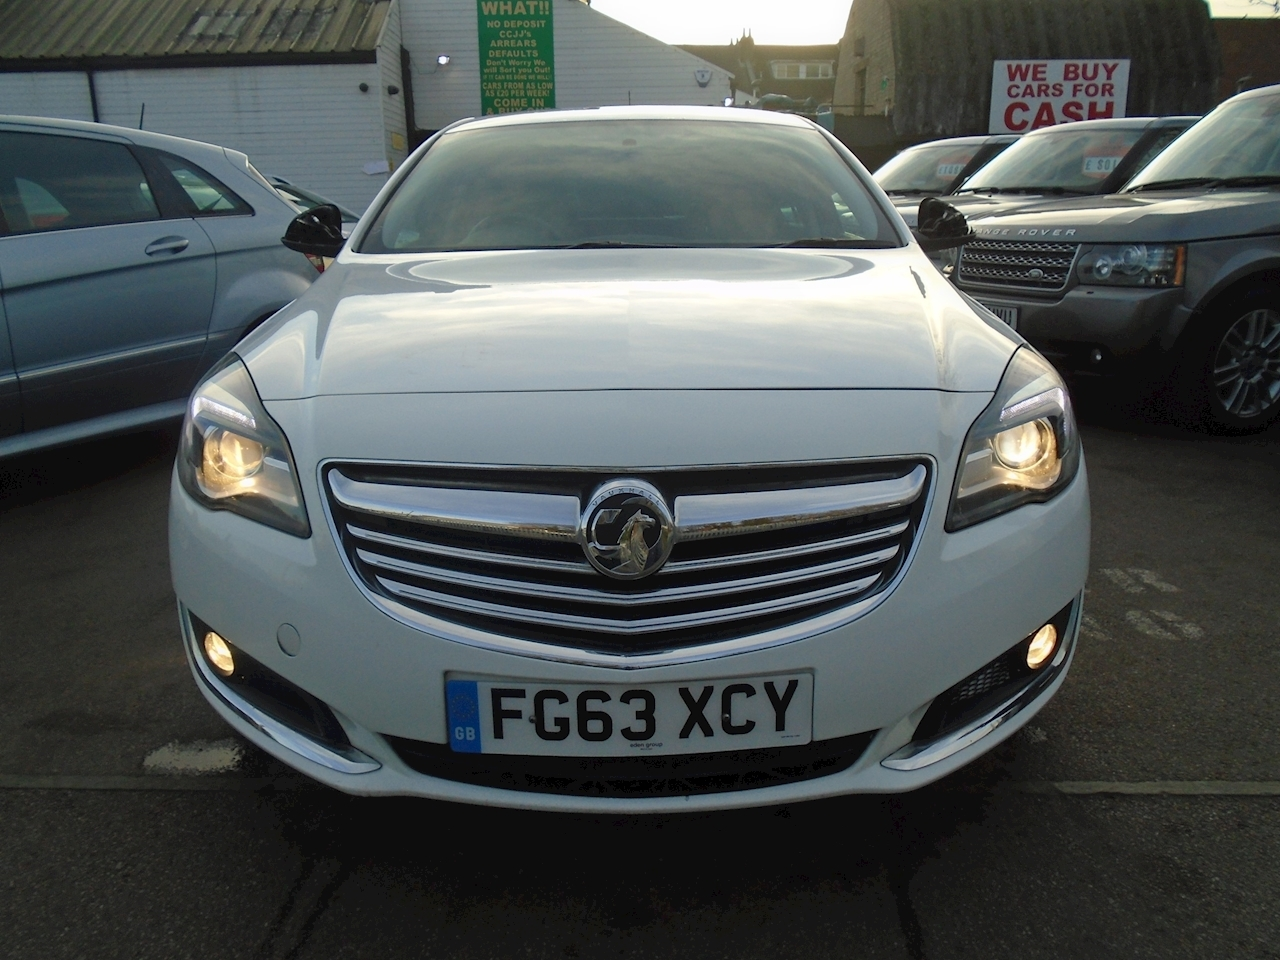 Insignia Sri Hatchback 1.8 Manual Petrol